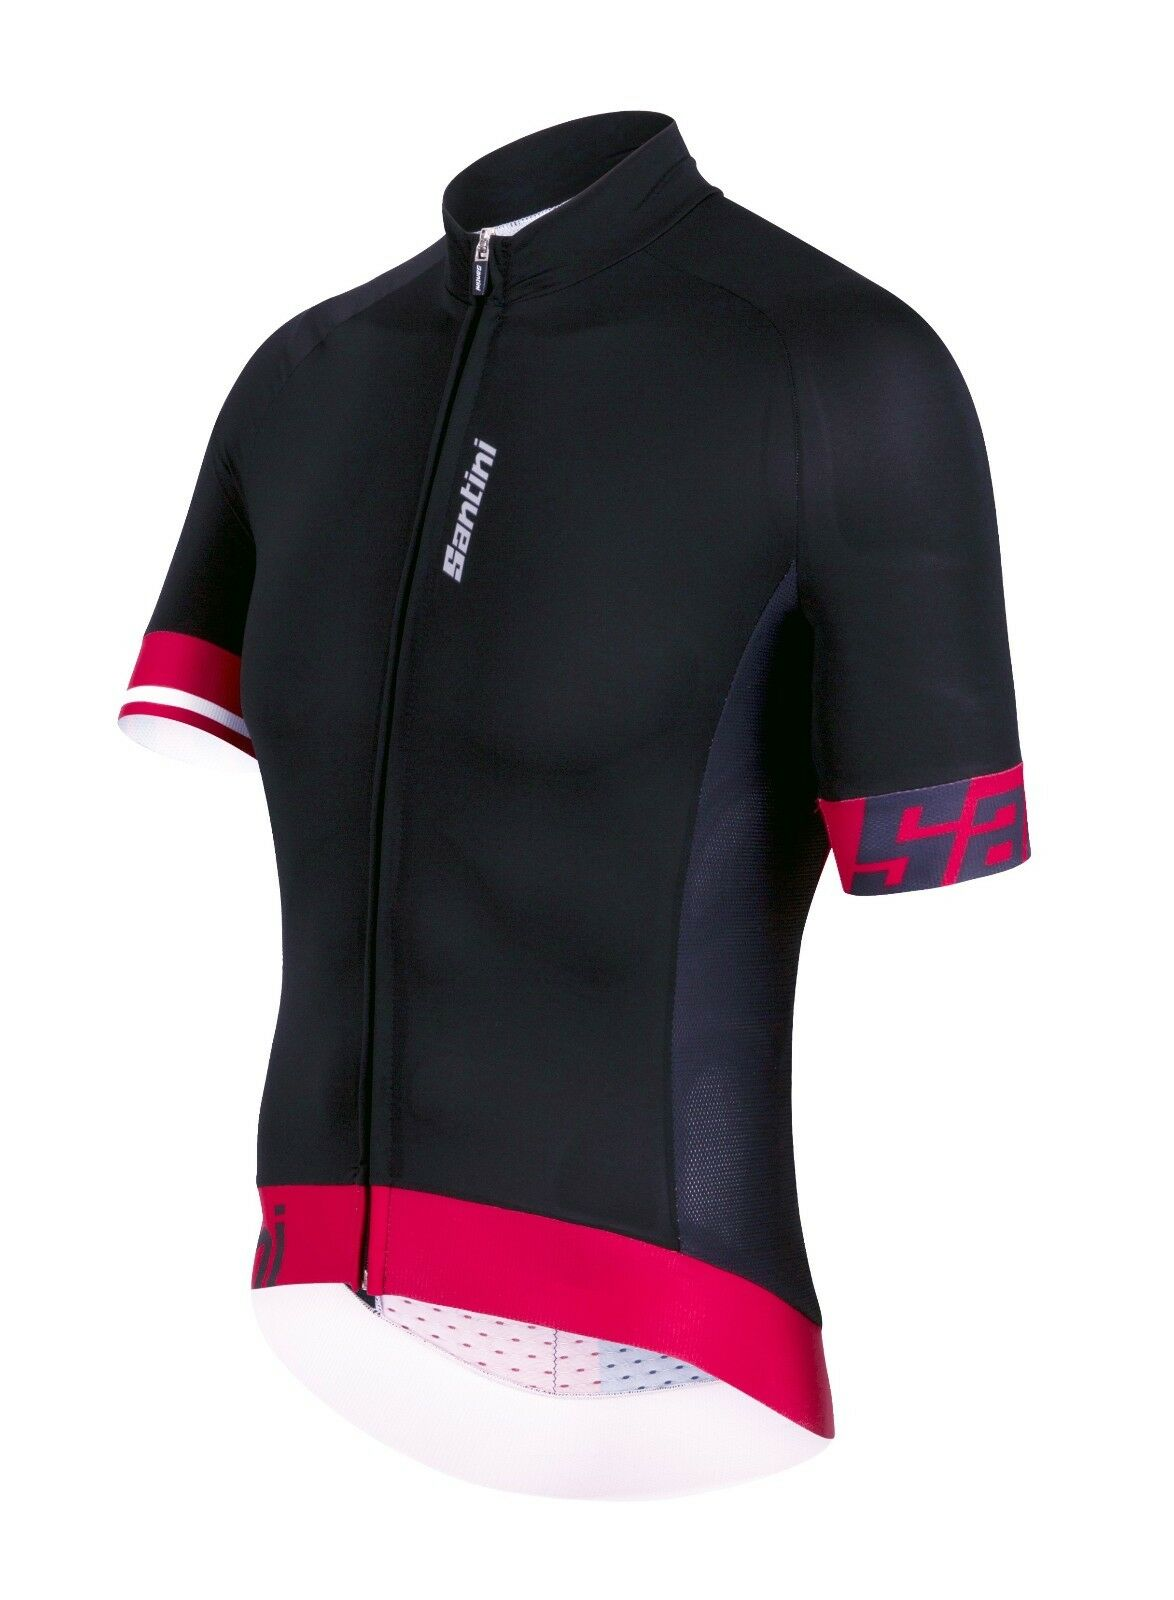 Men's Sleek 2.0 Aero Cycling Jersey in Blk rosso. Made Made Made in  by Santini 446393